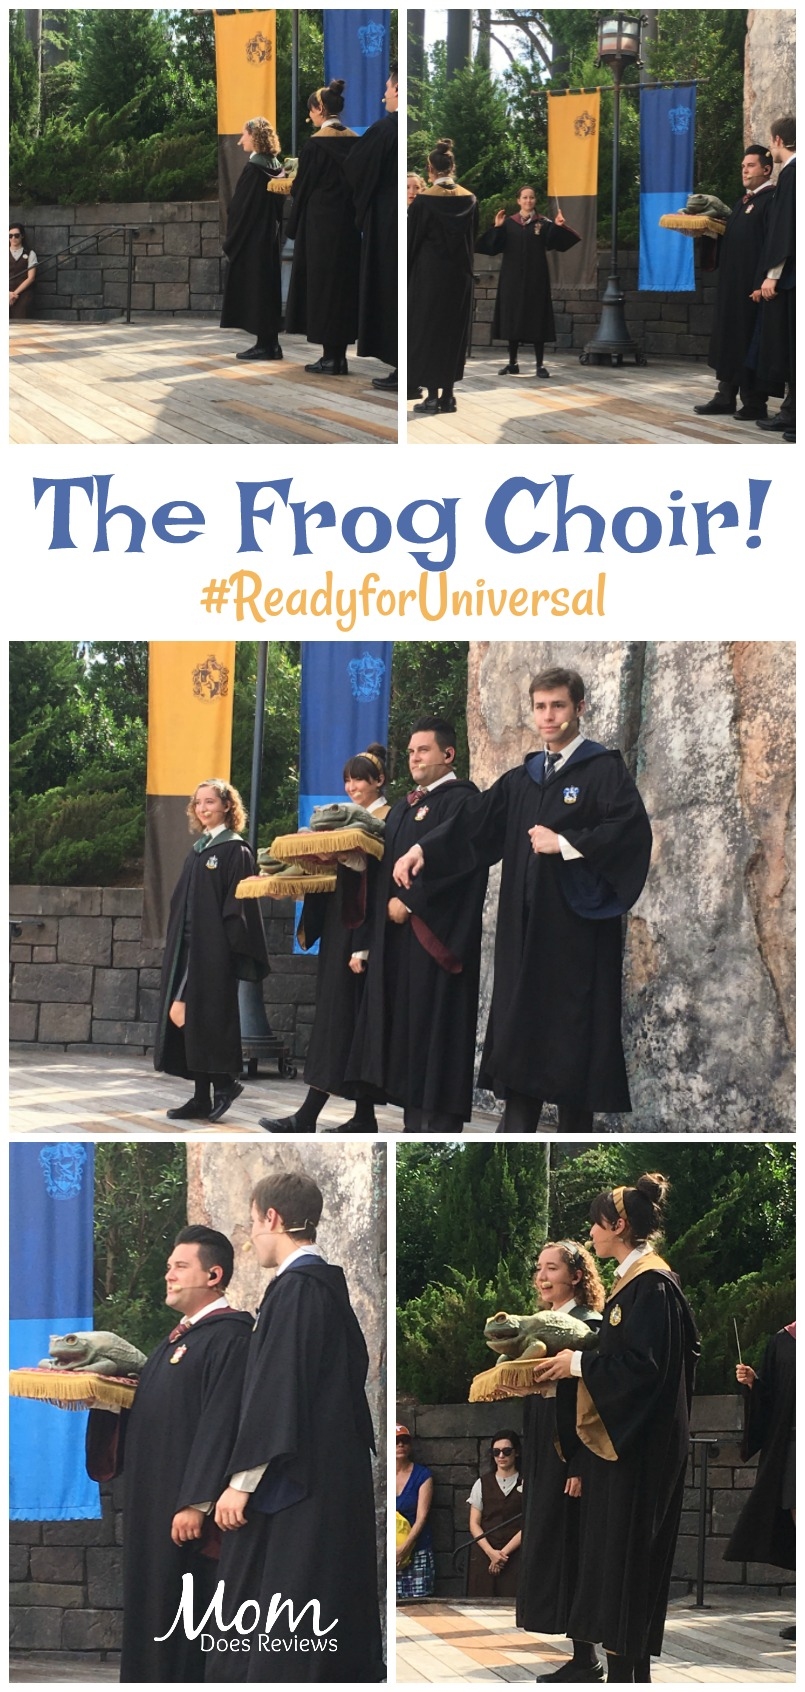 The Frog Choir